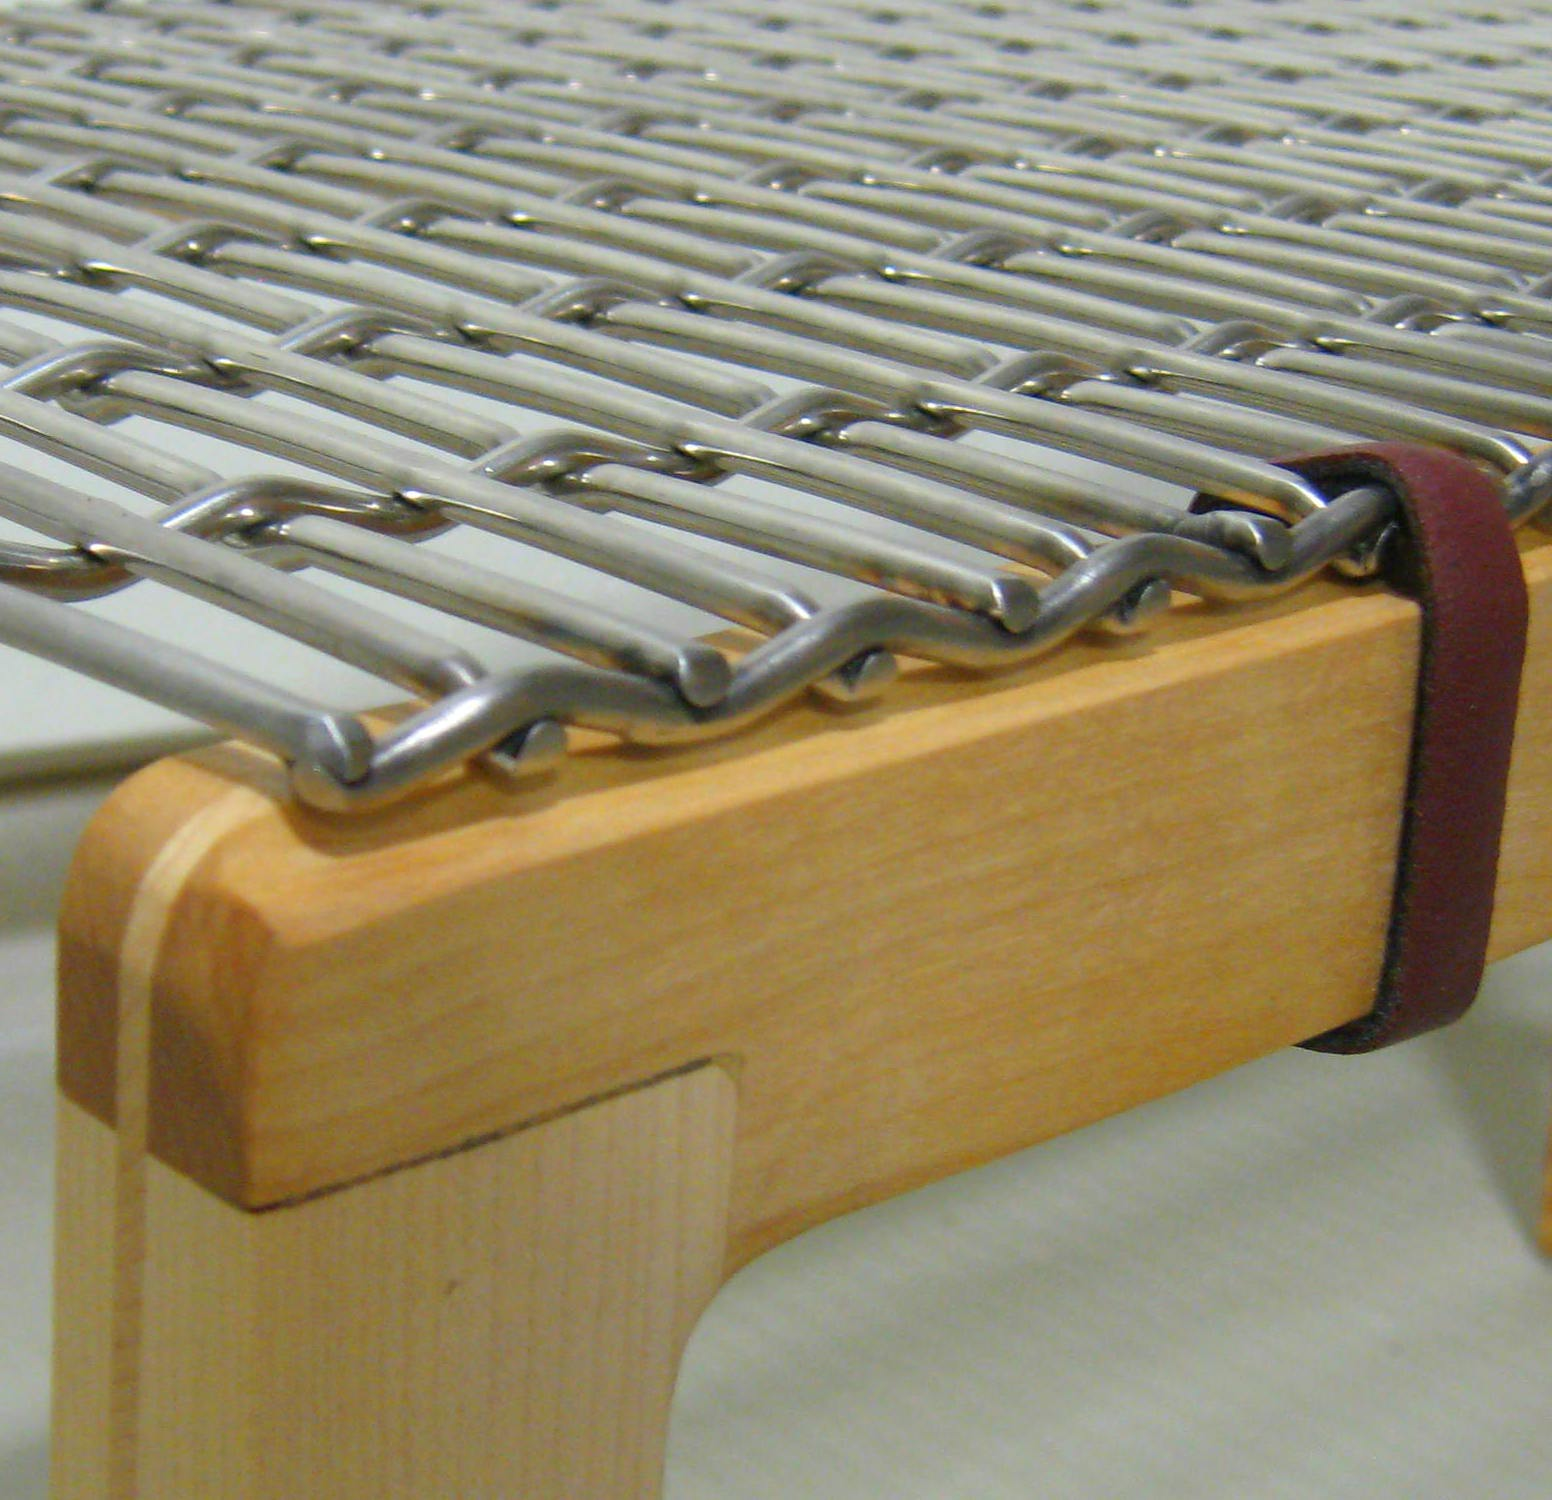 The smooth top surface makes this mesh the perfect choice for the custom crafted bench surfaces.